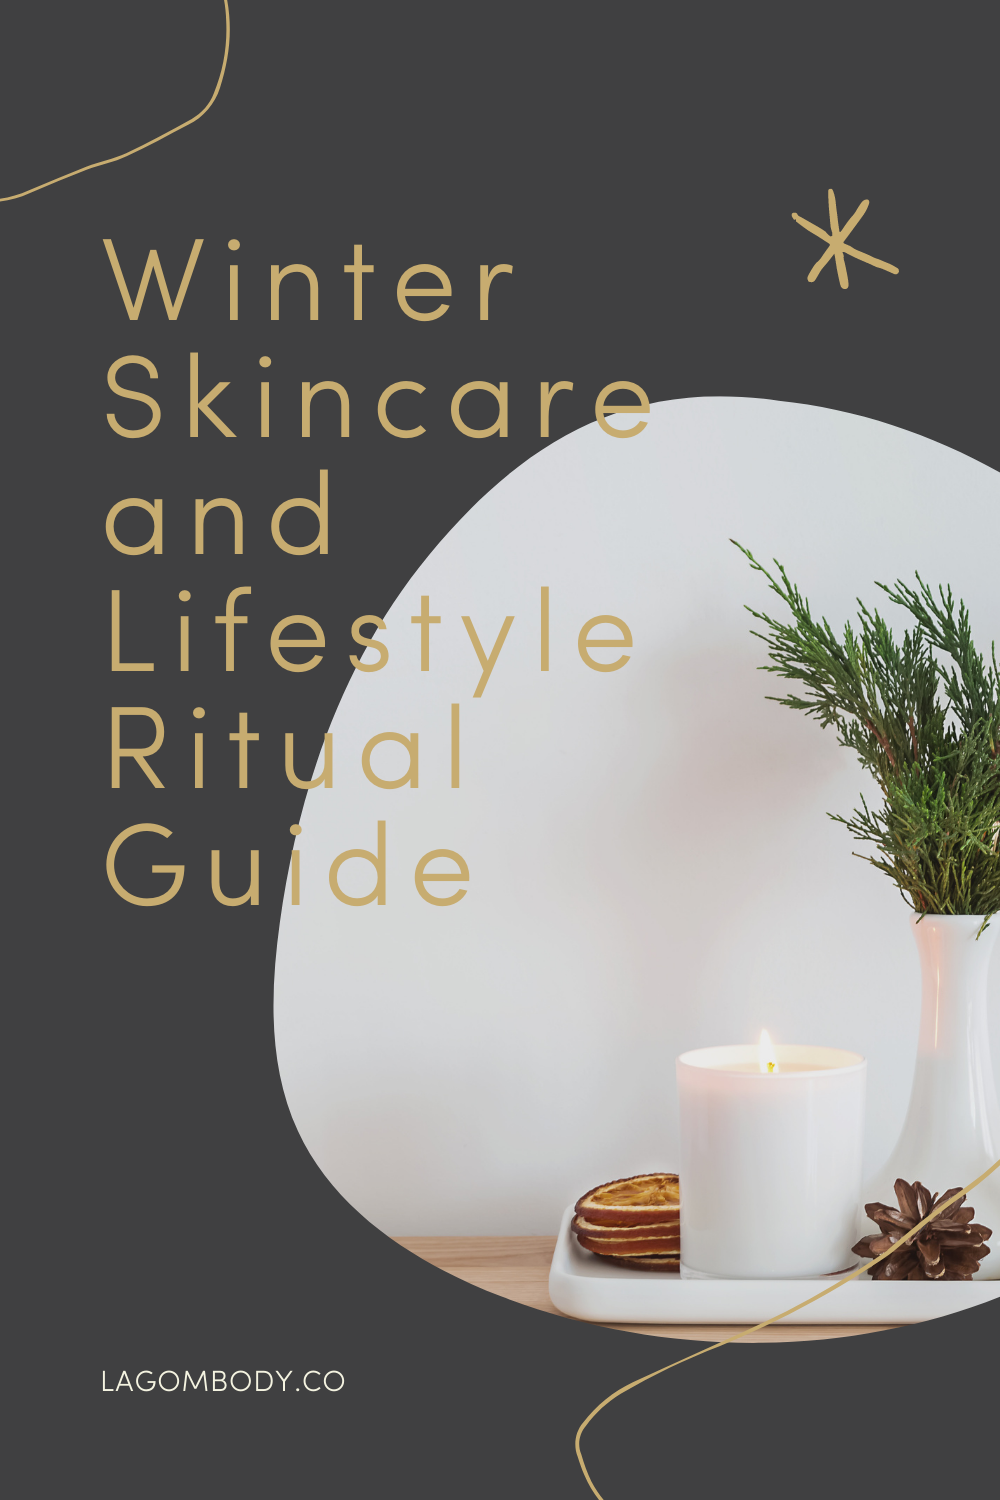 Winter Skincare and Lifestyle Guide Promo Image